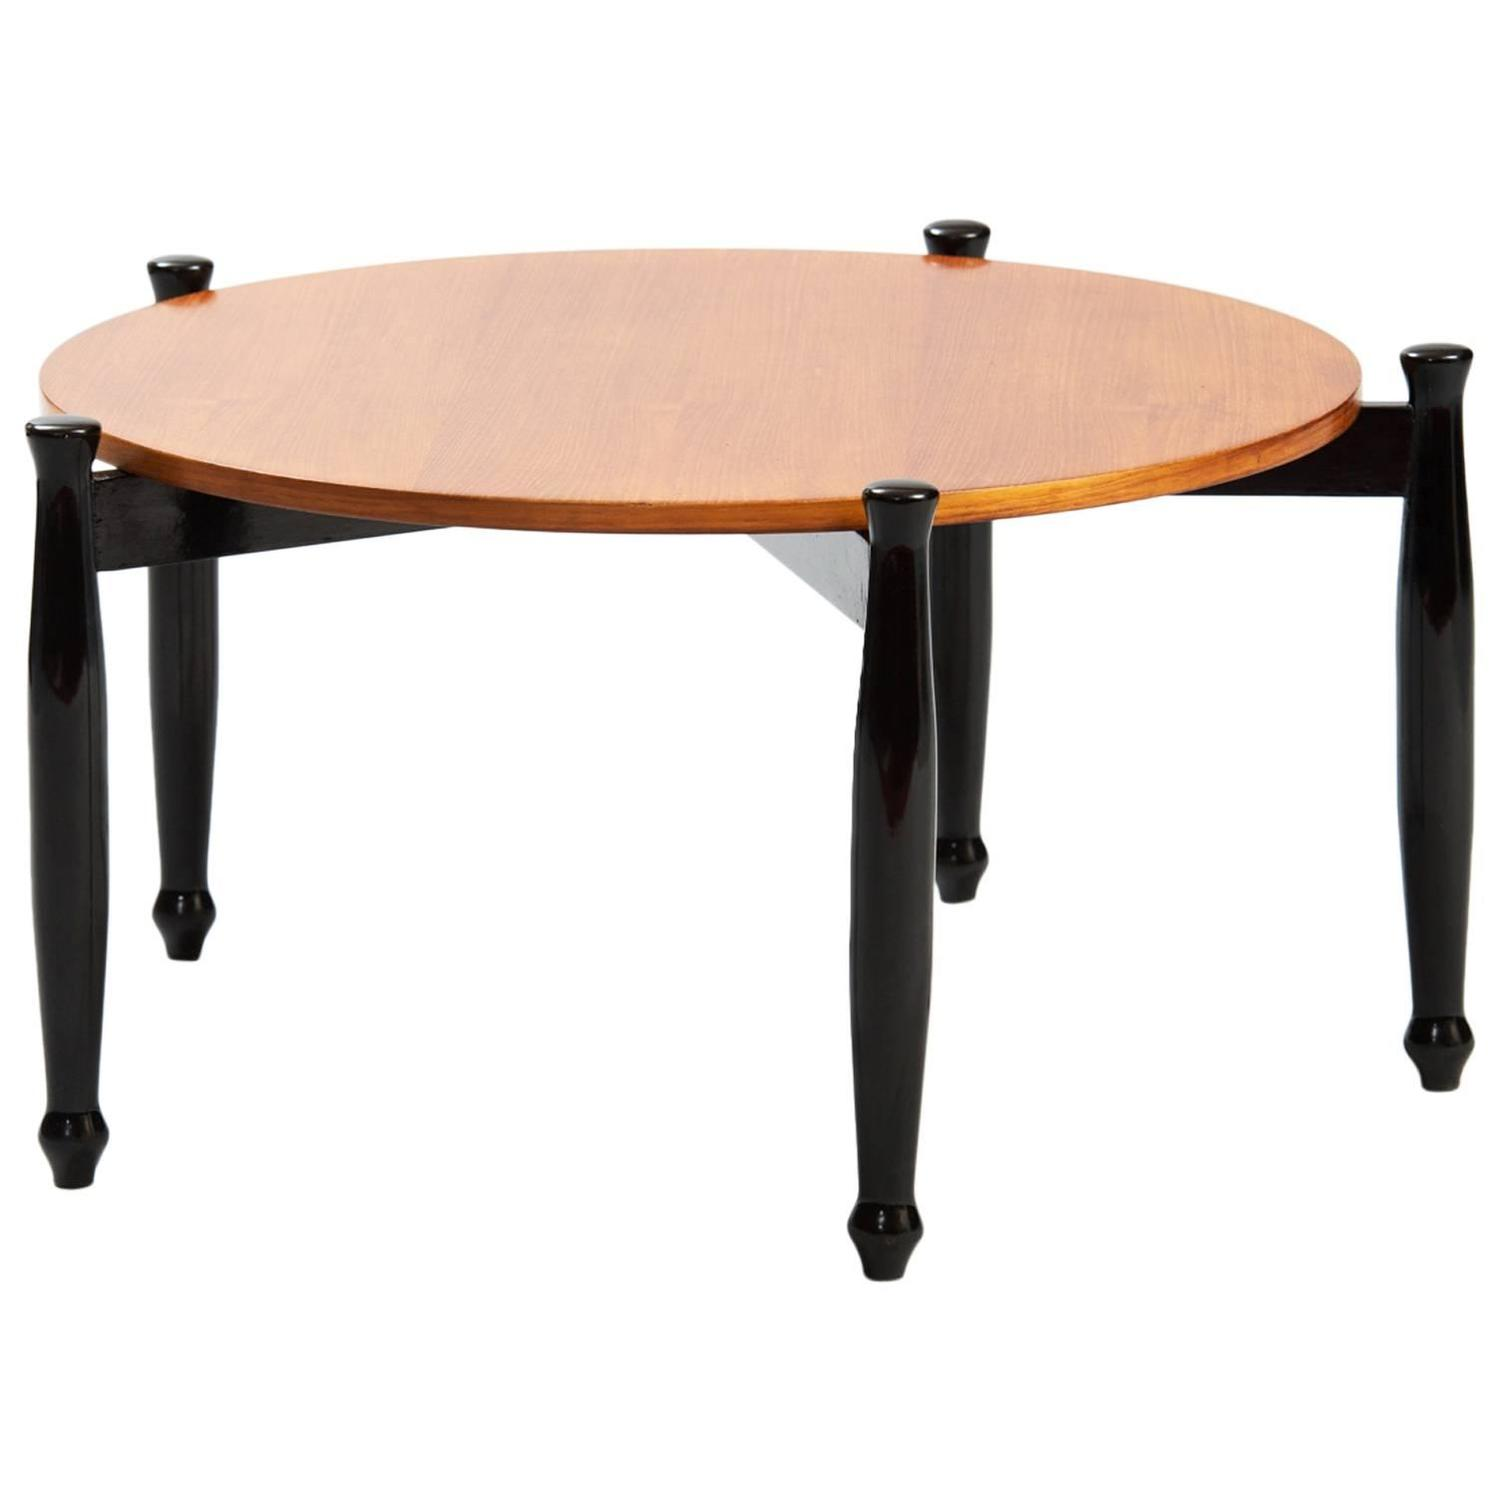 Italian Coffee Table For Sale At 1stdibs